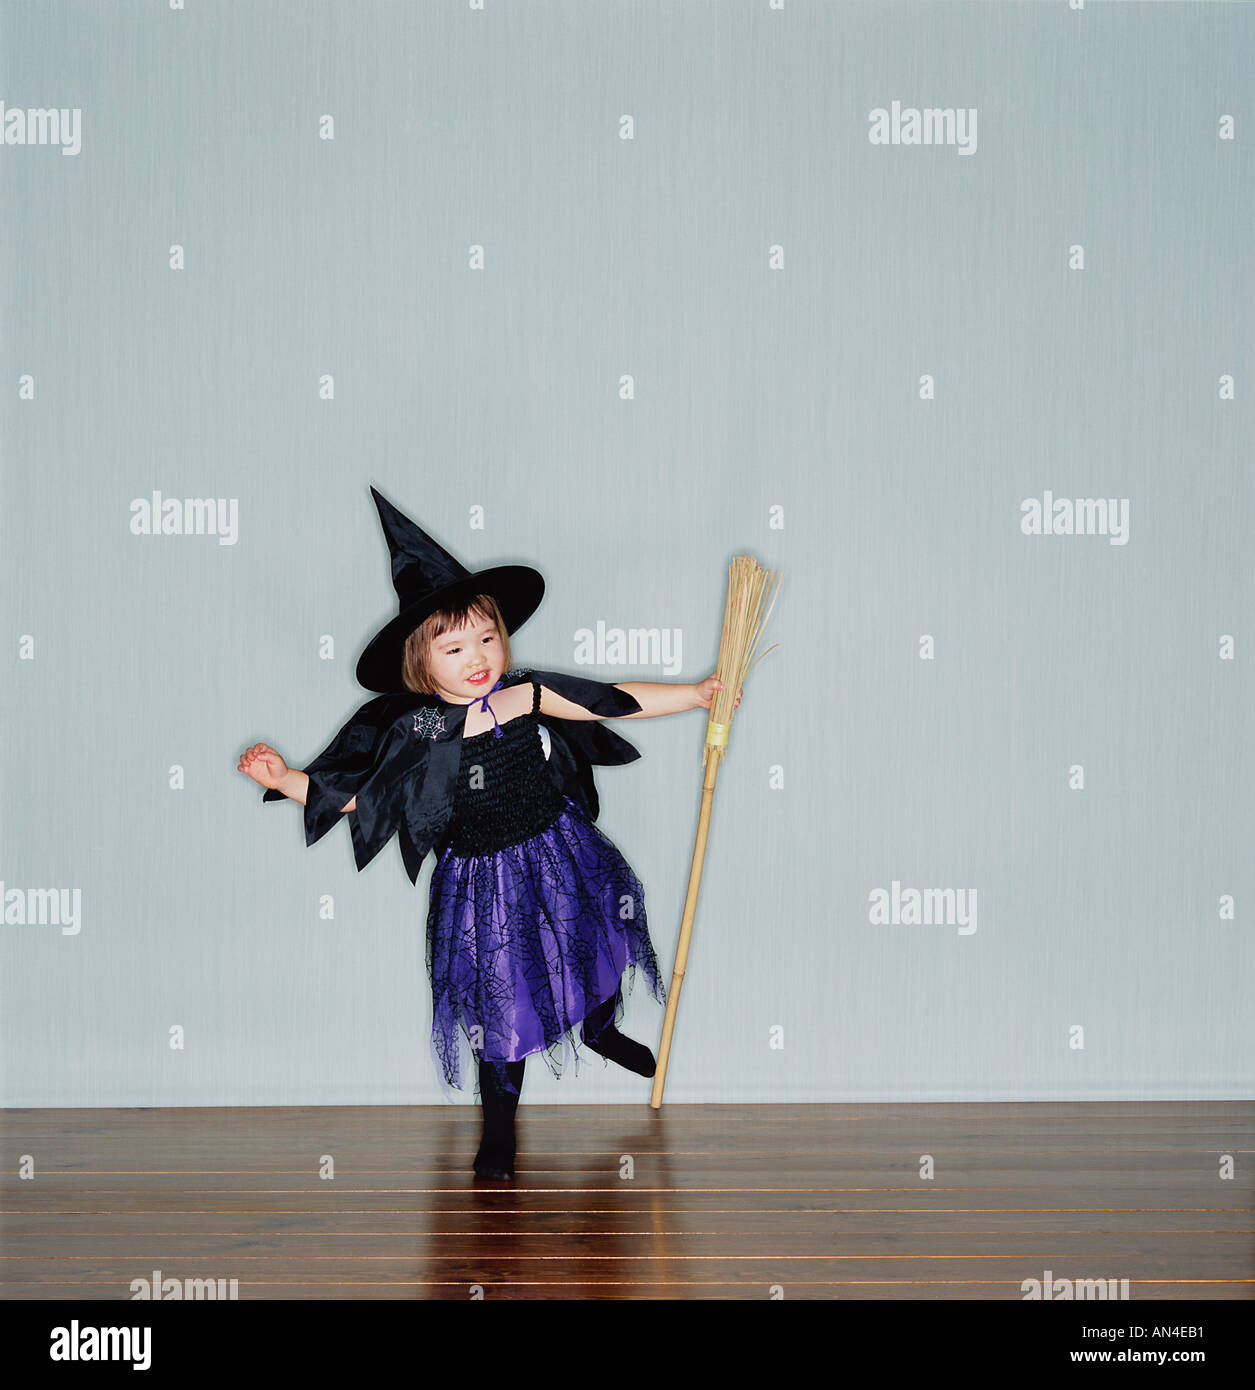 CHILD IN WITCHS OUTFIT - Stock Image